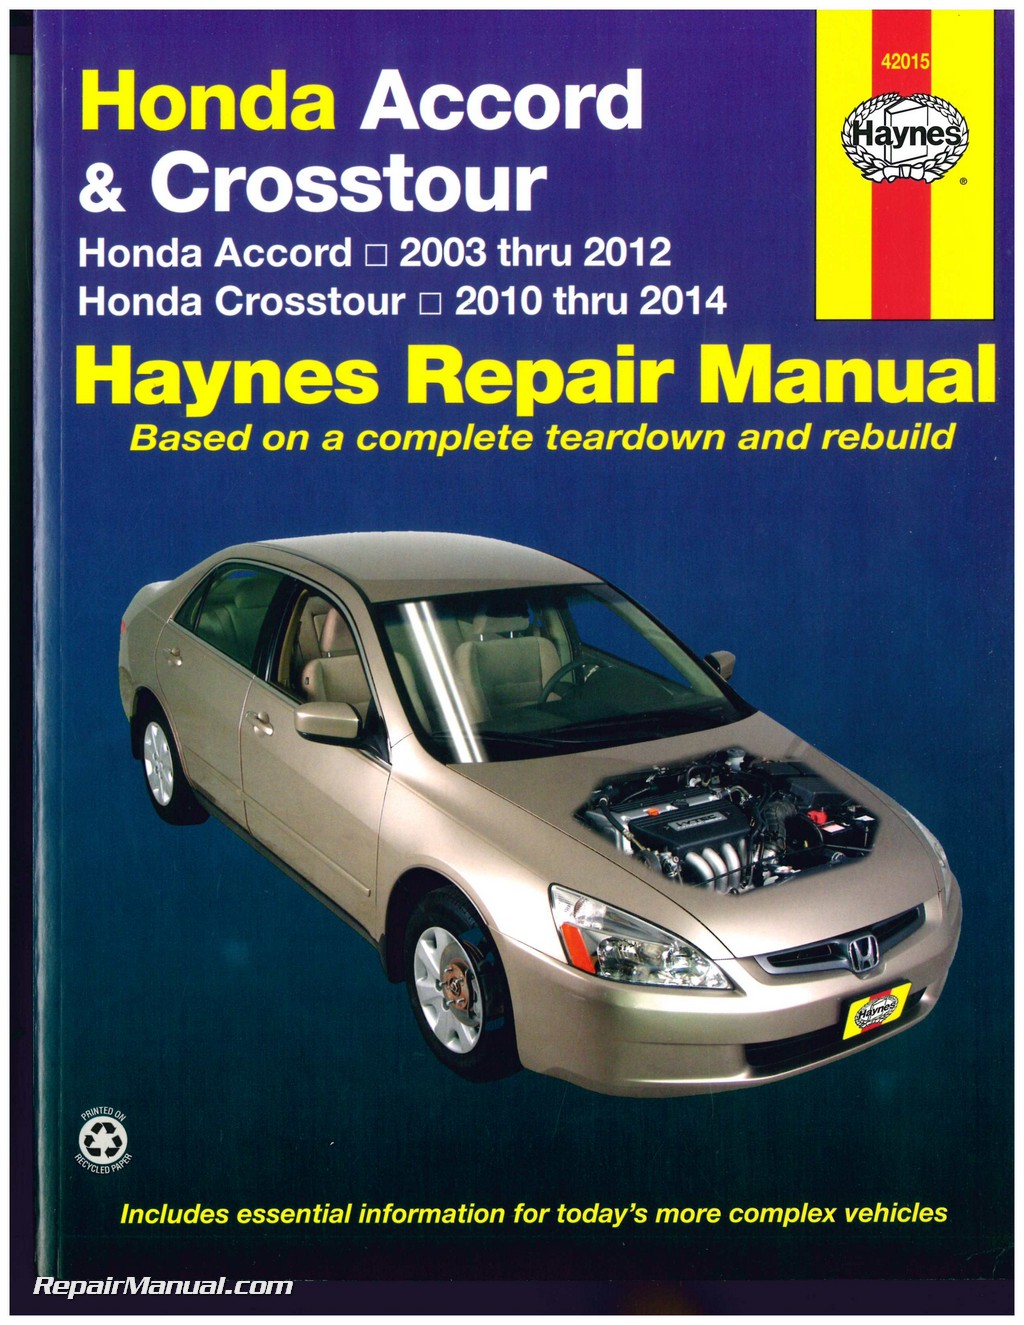 Honda Accord 2003 2012 Crosstour 2010 2014 Haynes